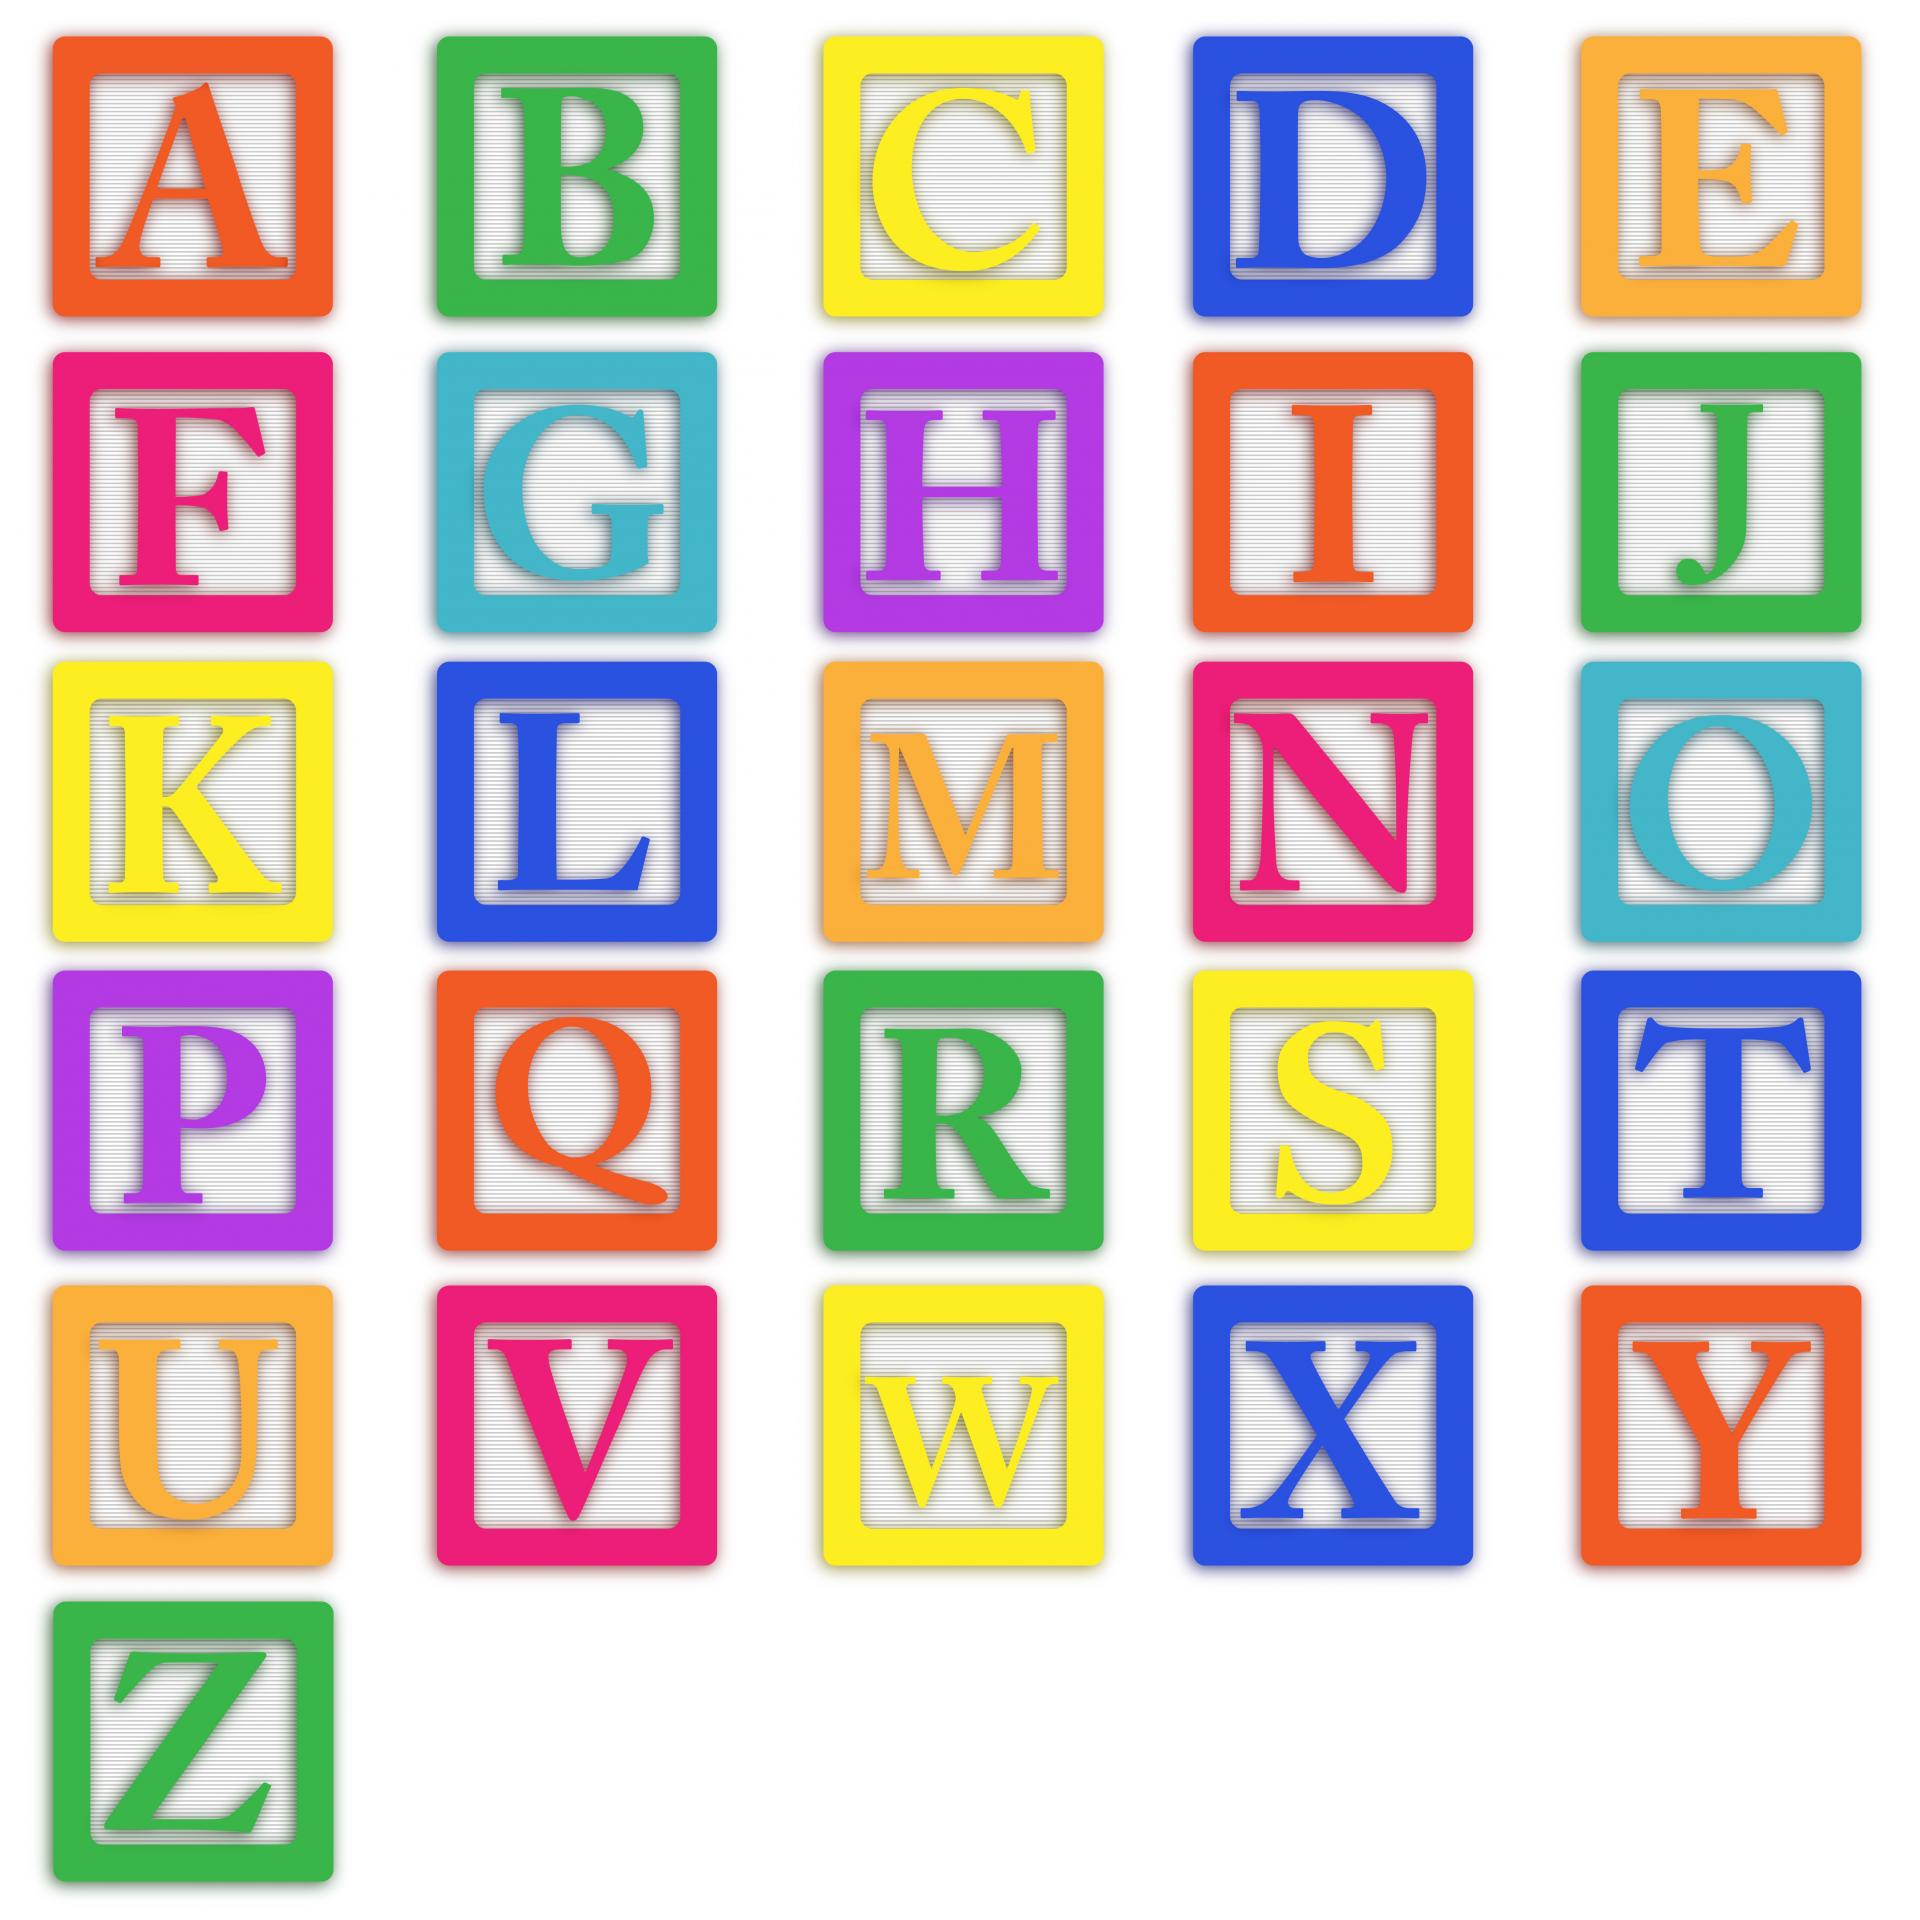 Baby blocks clipartfest letters. Alphabet block clipart